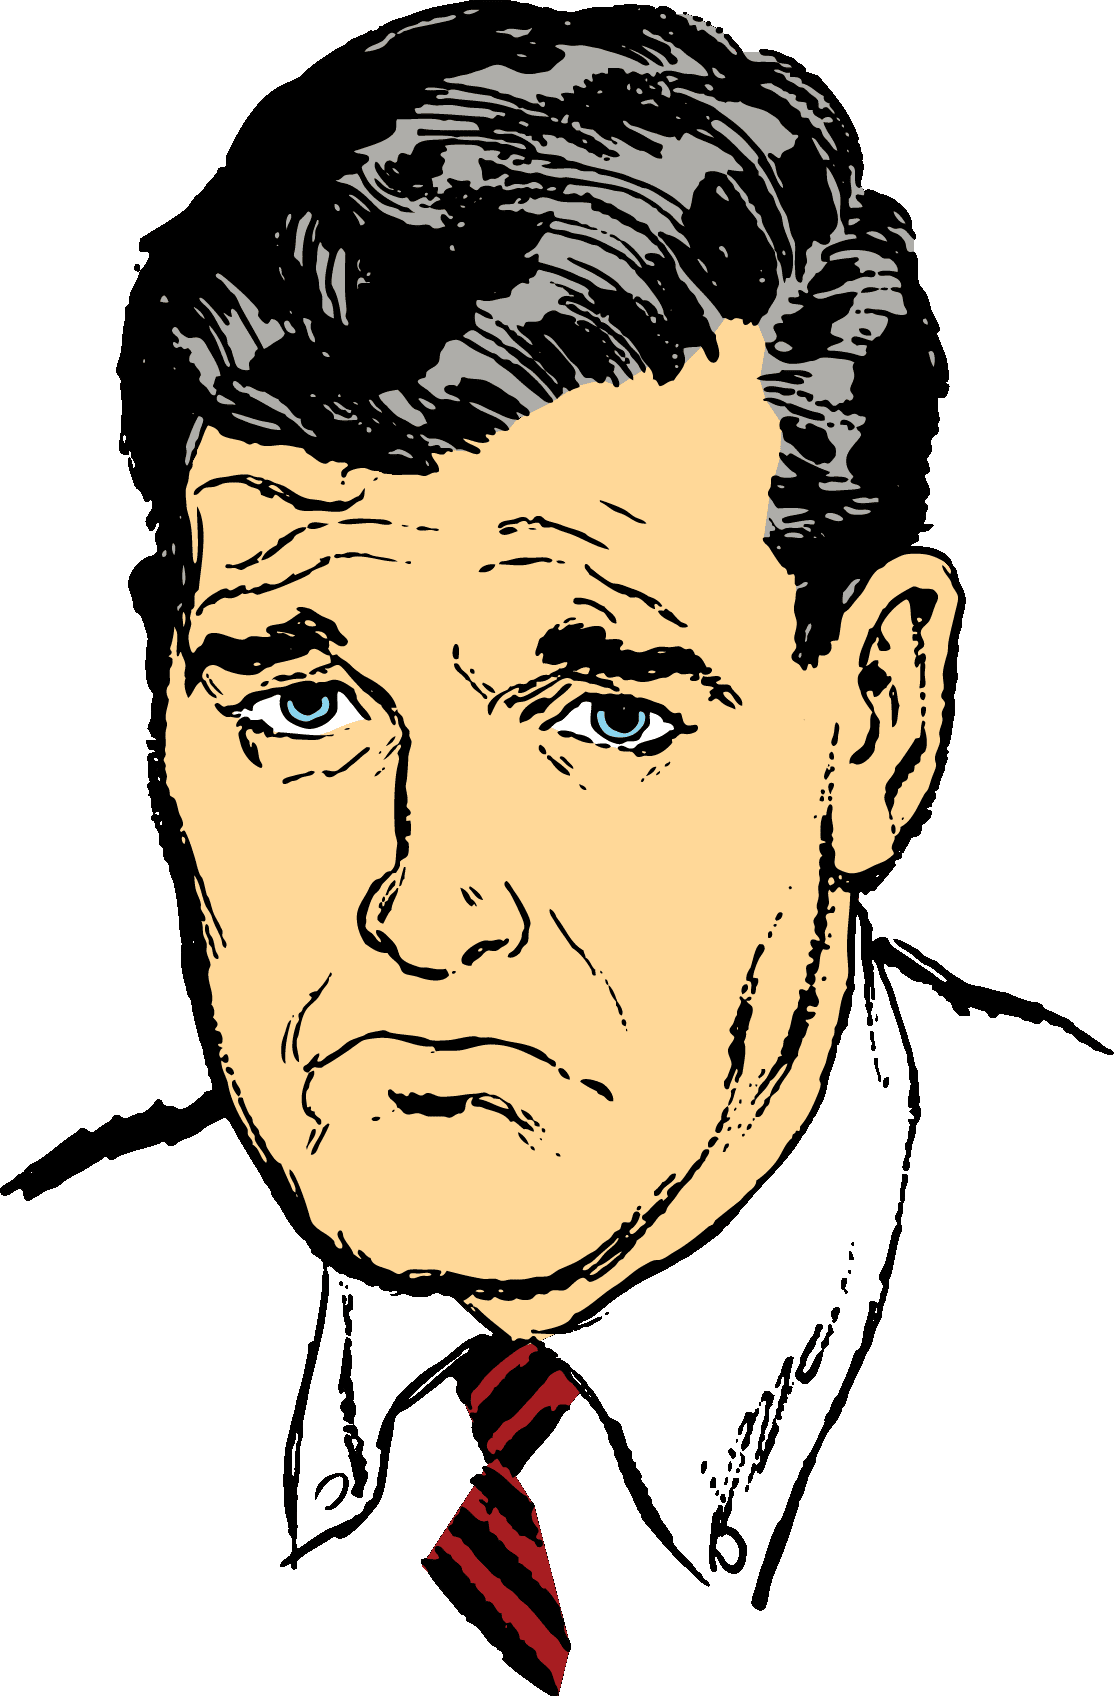 Illustration of a white business man's face with a pouting expression